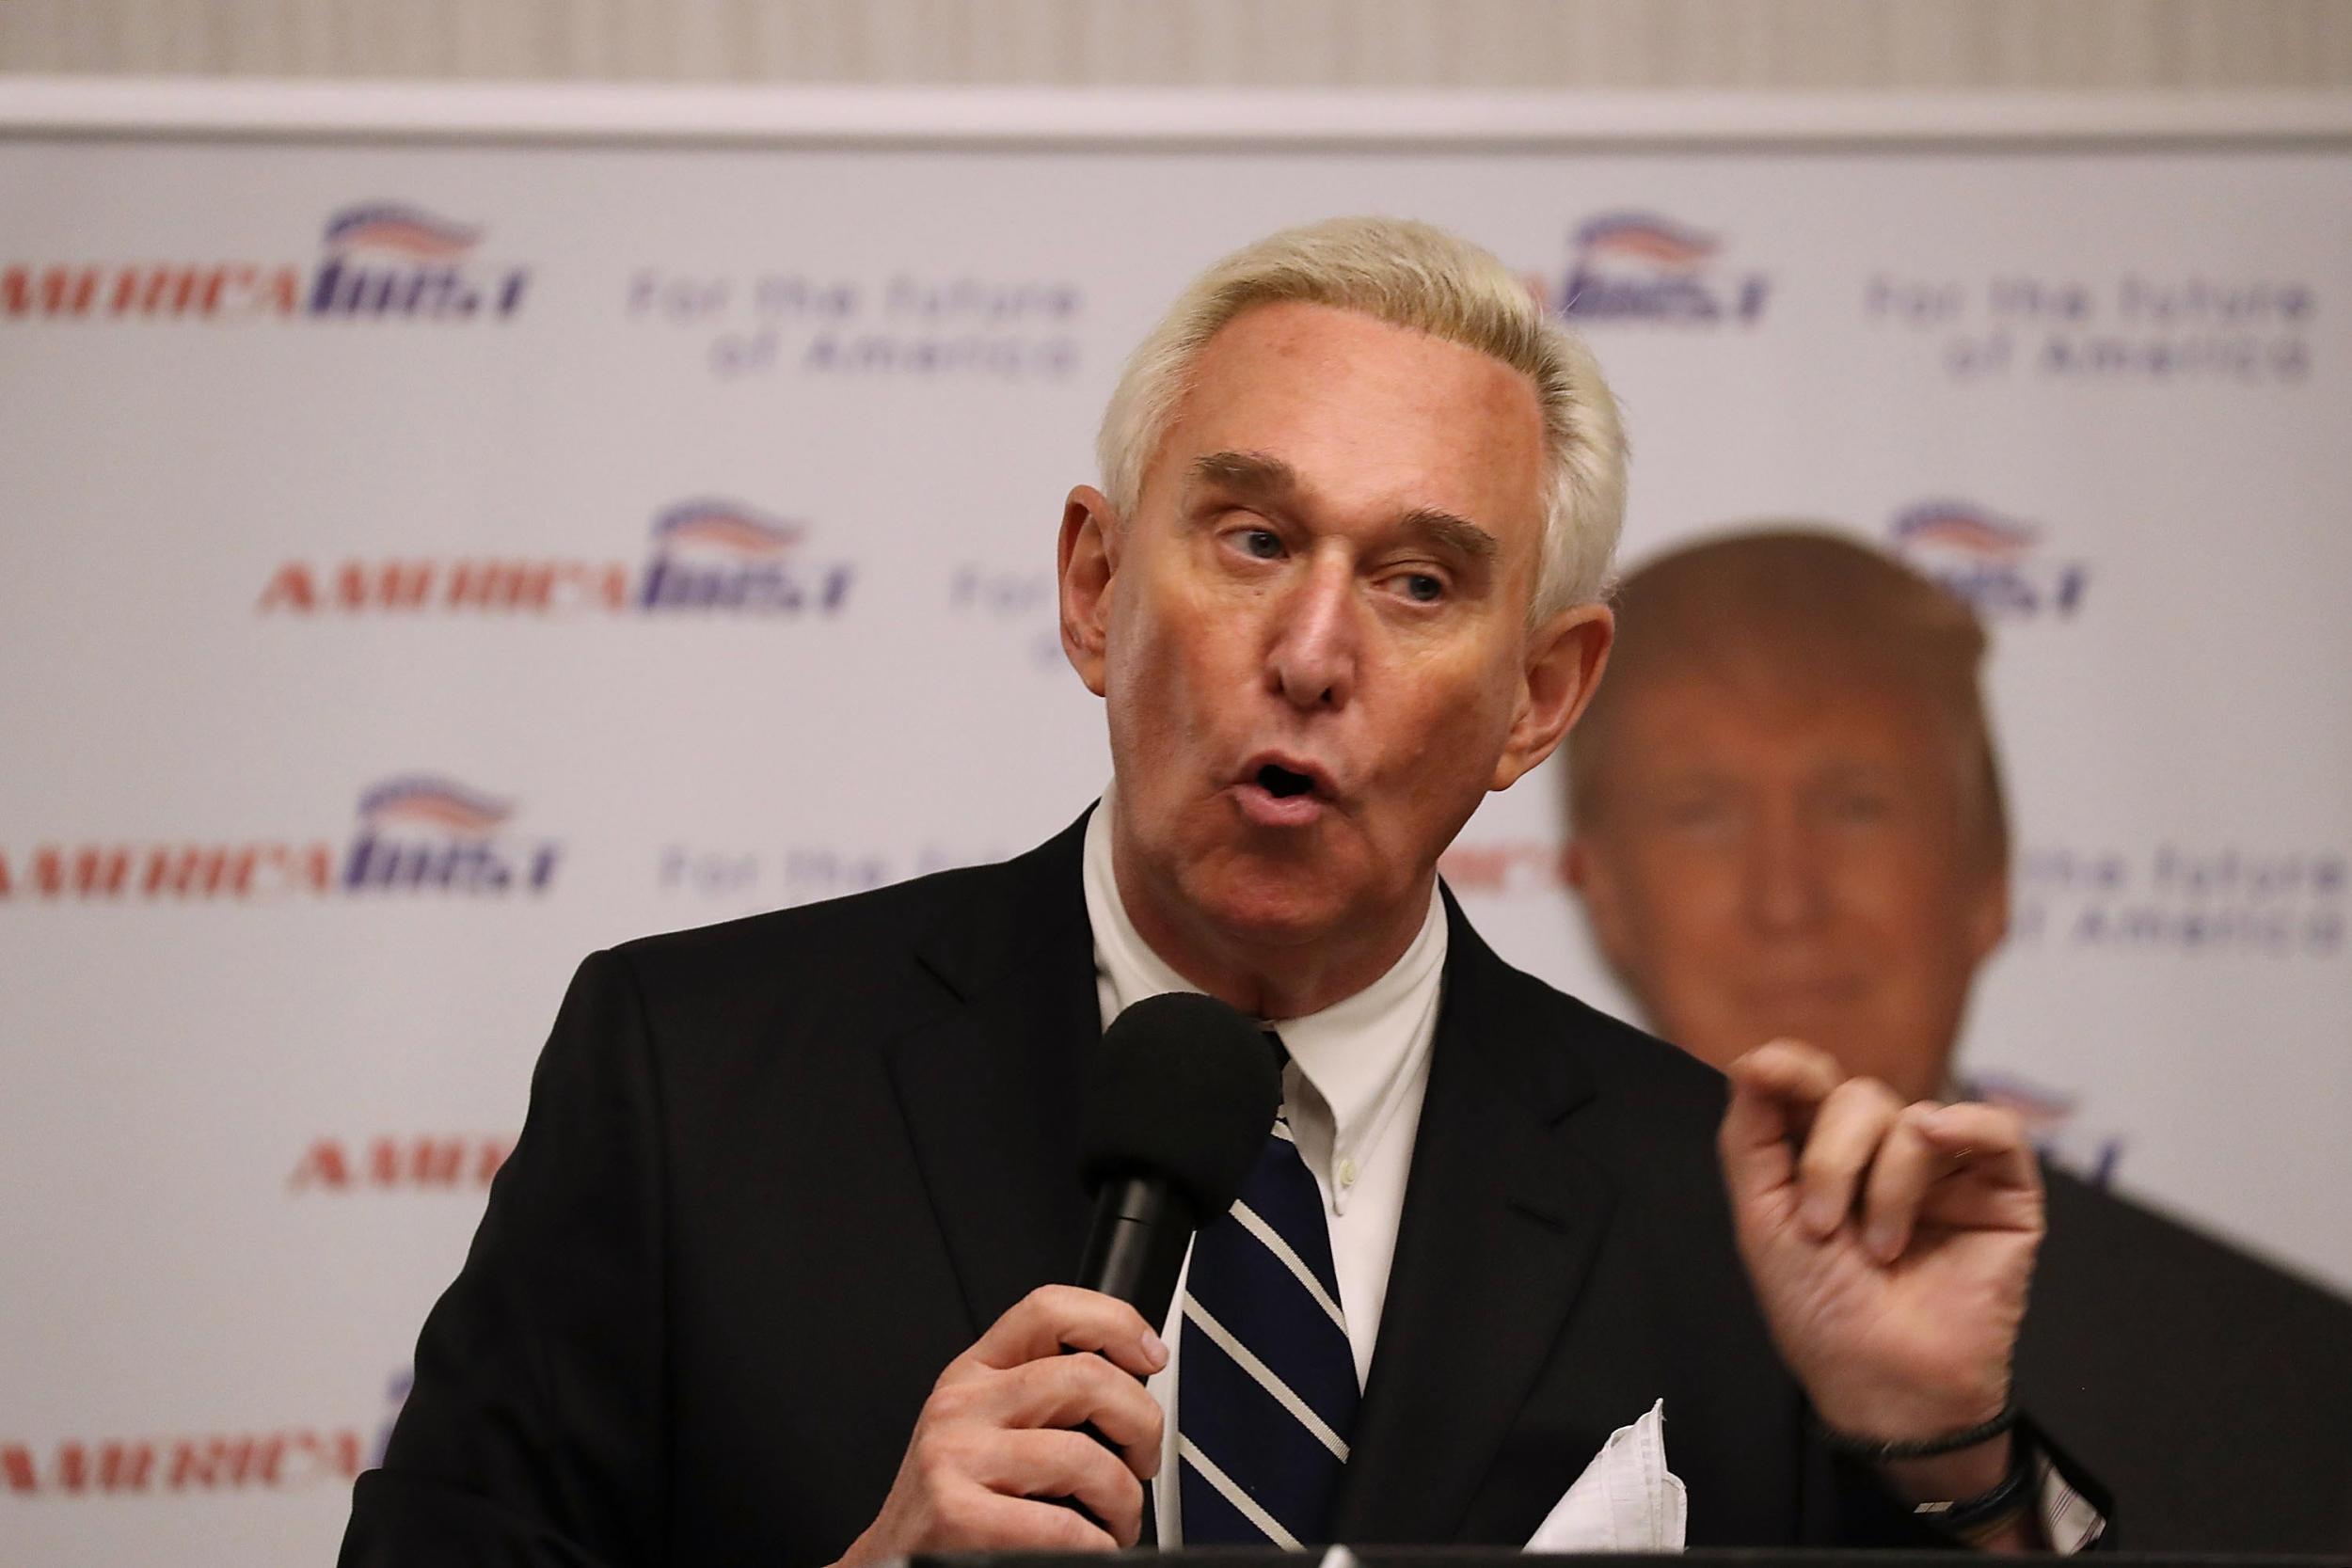 Trump refuses to rule out commuting Roger Stone sentence amid string of controversial pardons - independent